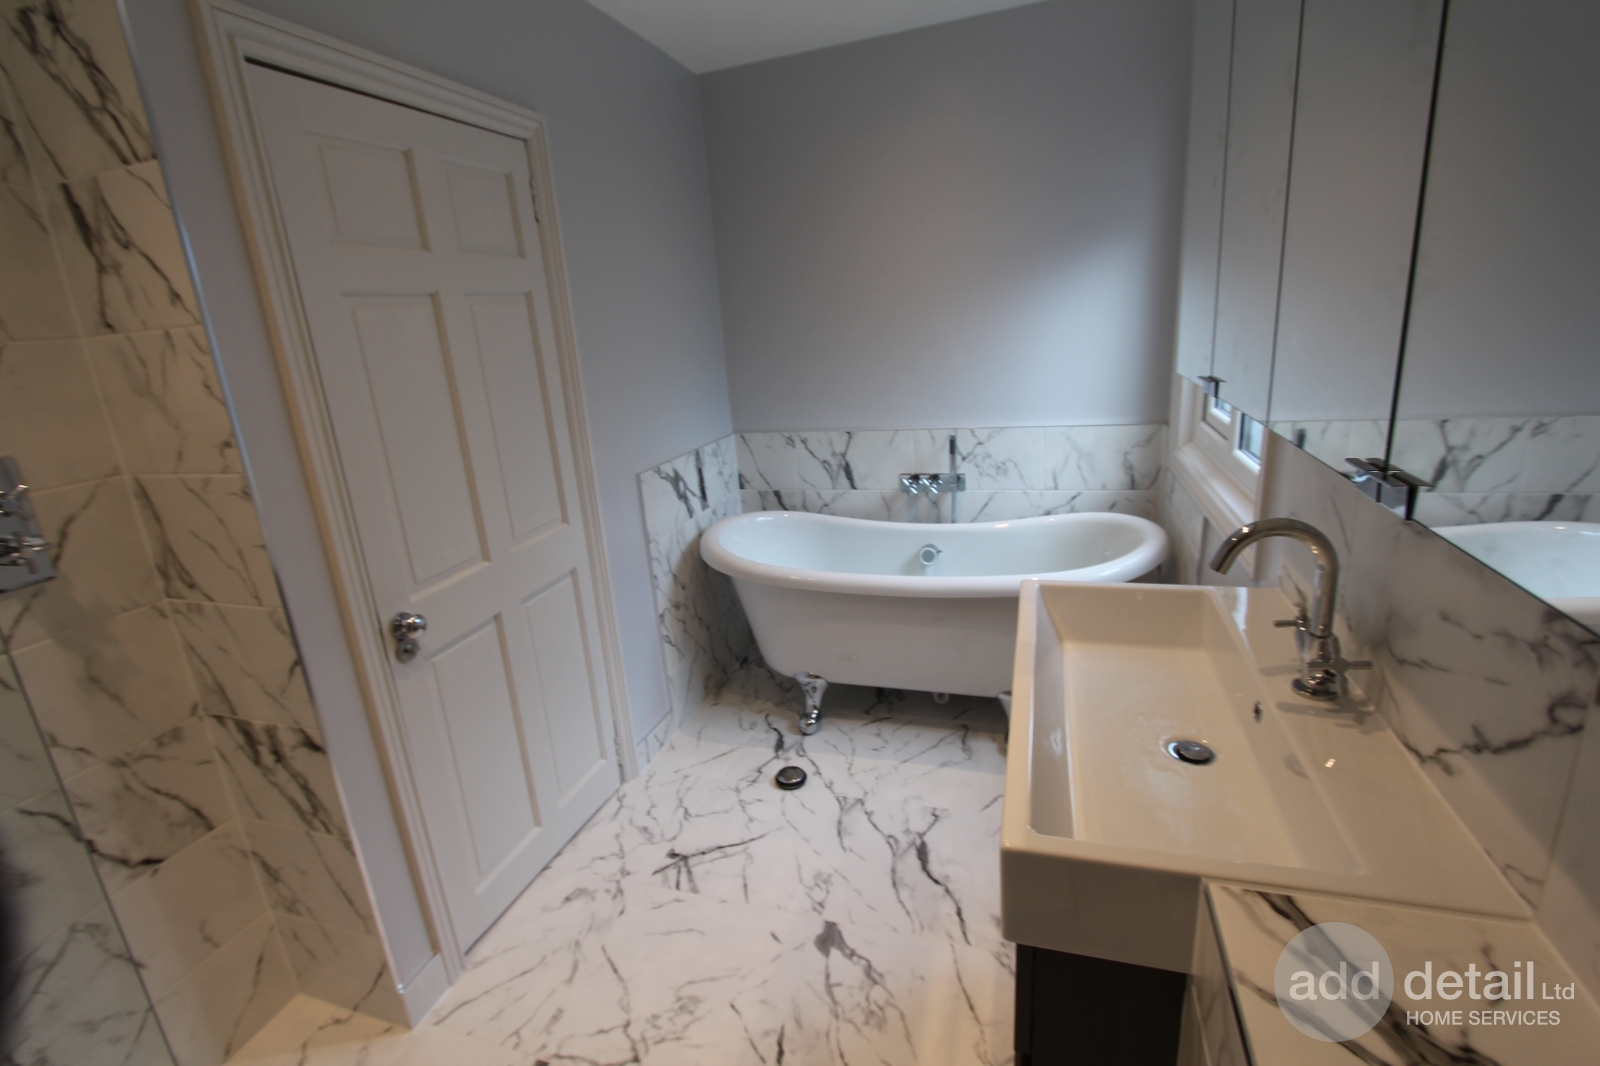 Wet-room Installation - South West London - Central London - London